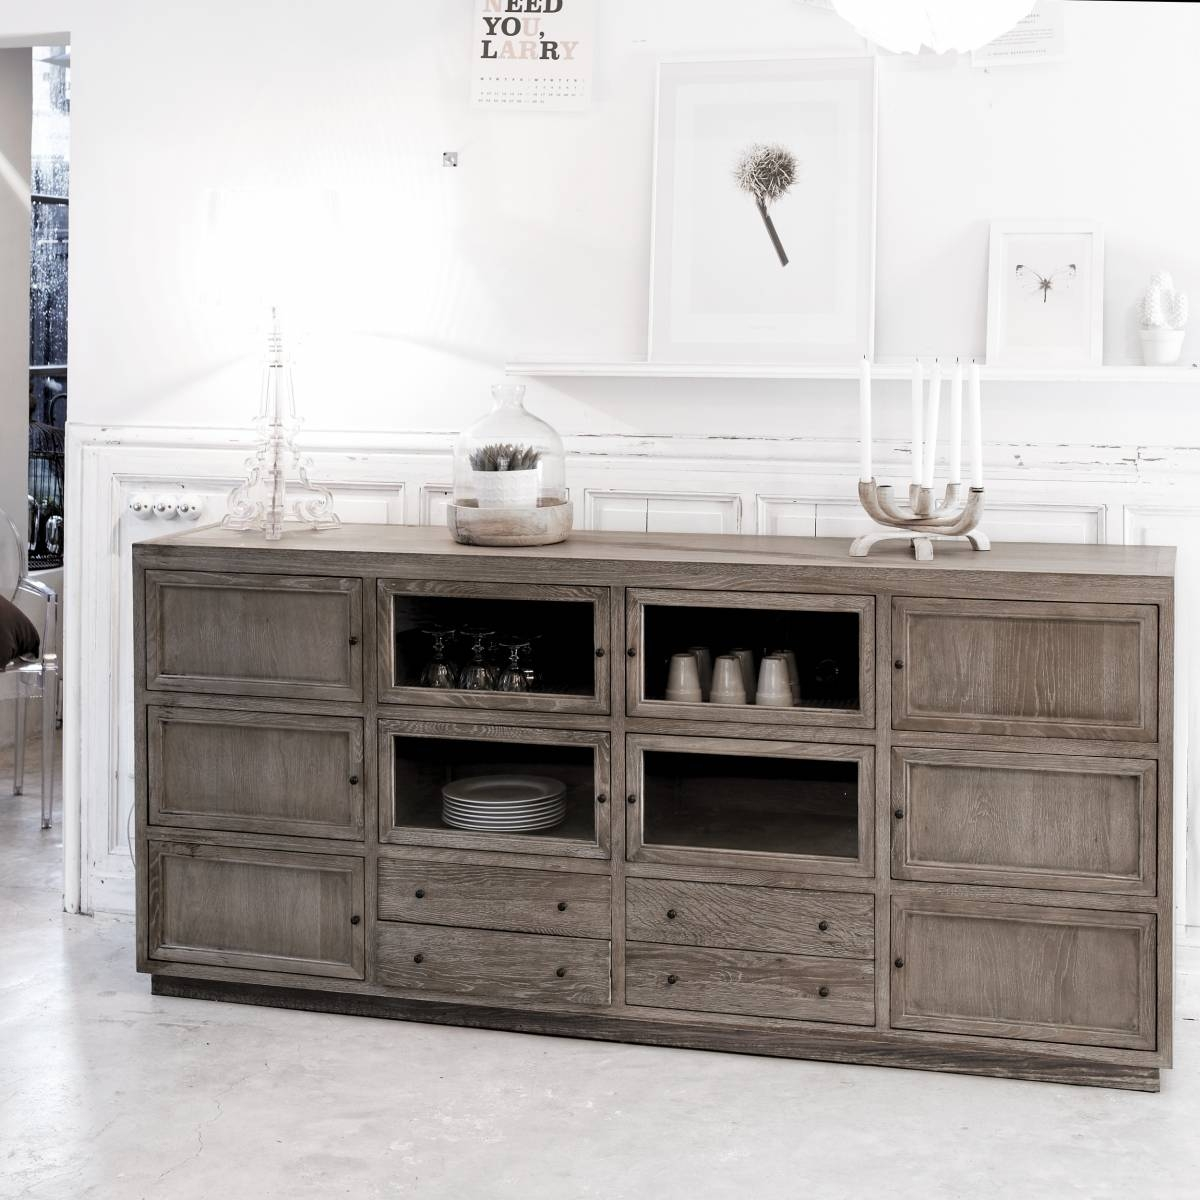 Popular Photo of Sideboards For Sale